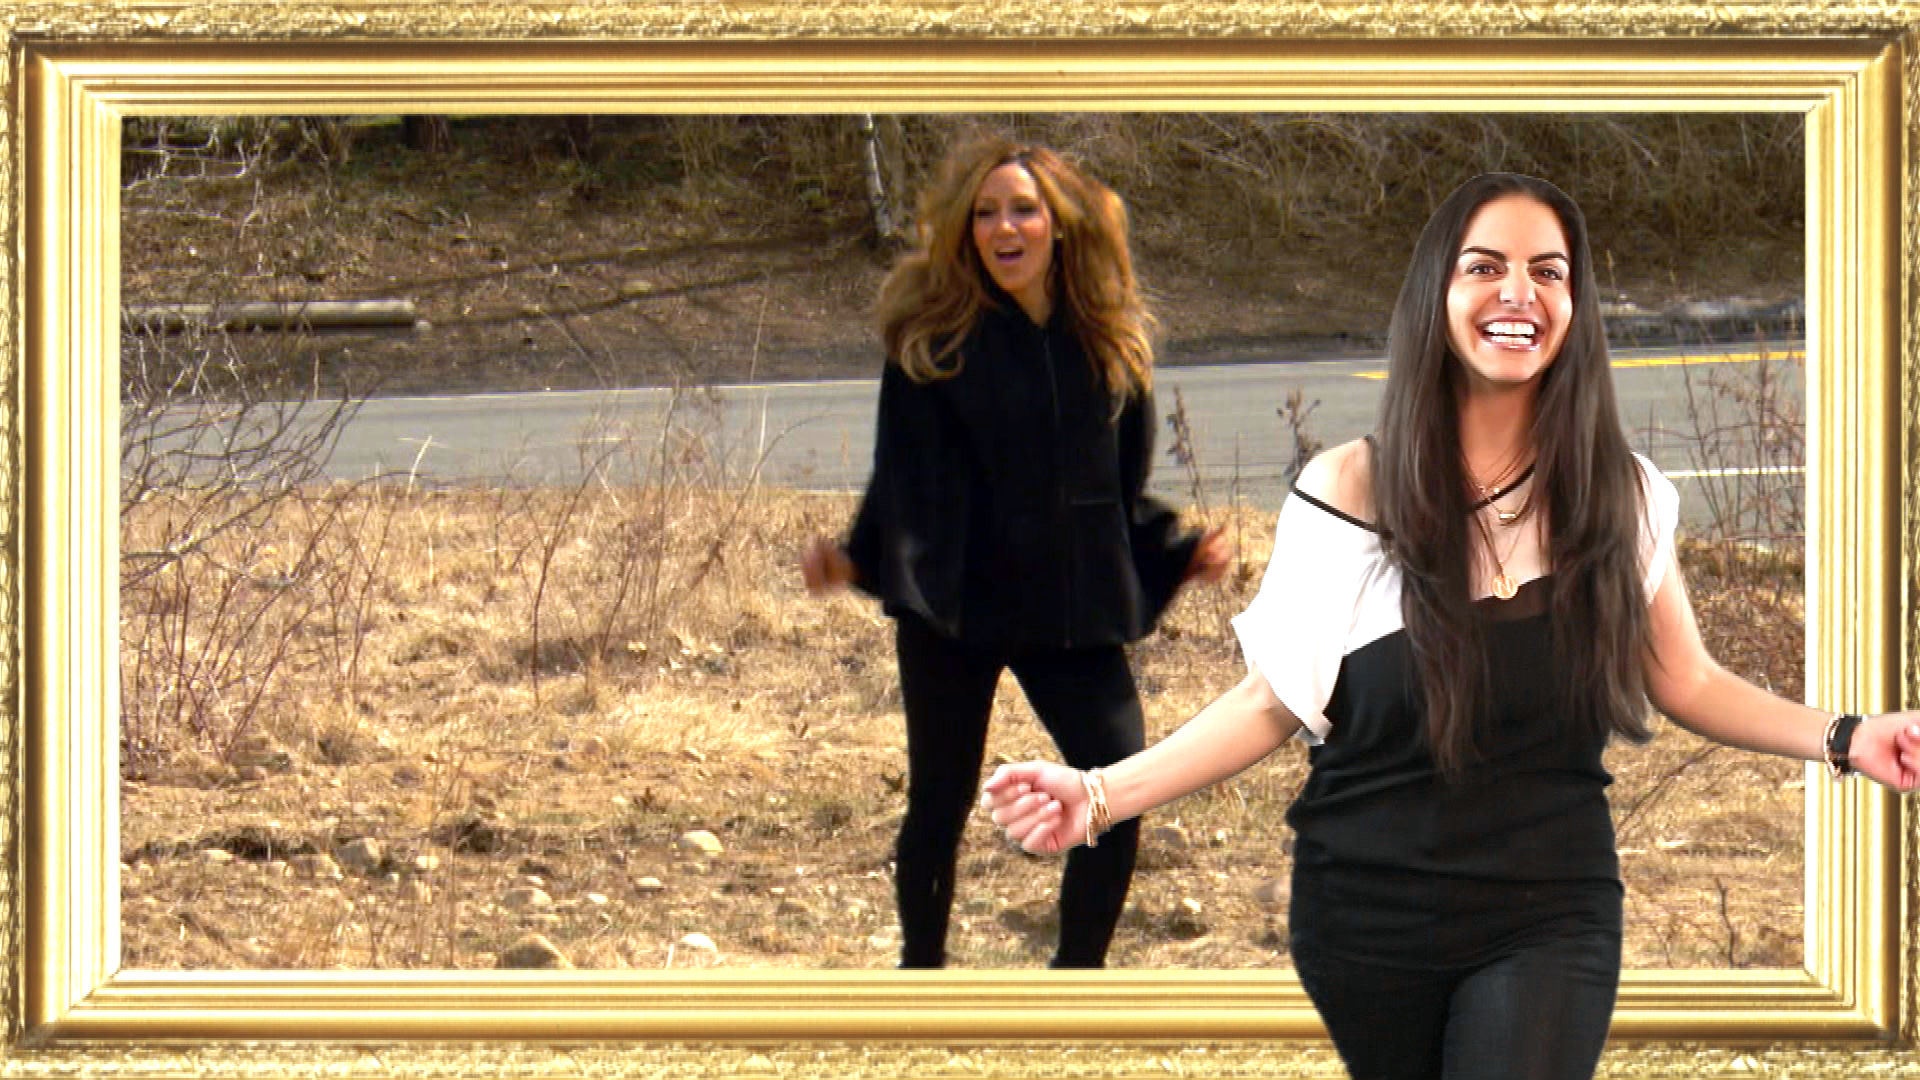 RHONJ ep 14 Recap Part 1: Gorga Gaga for Heavy Machinery